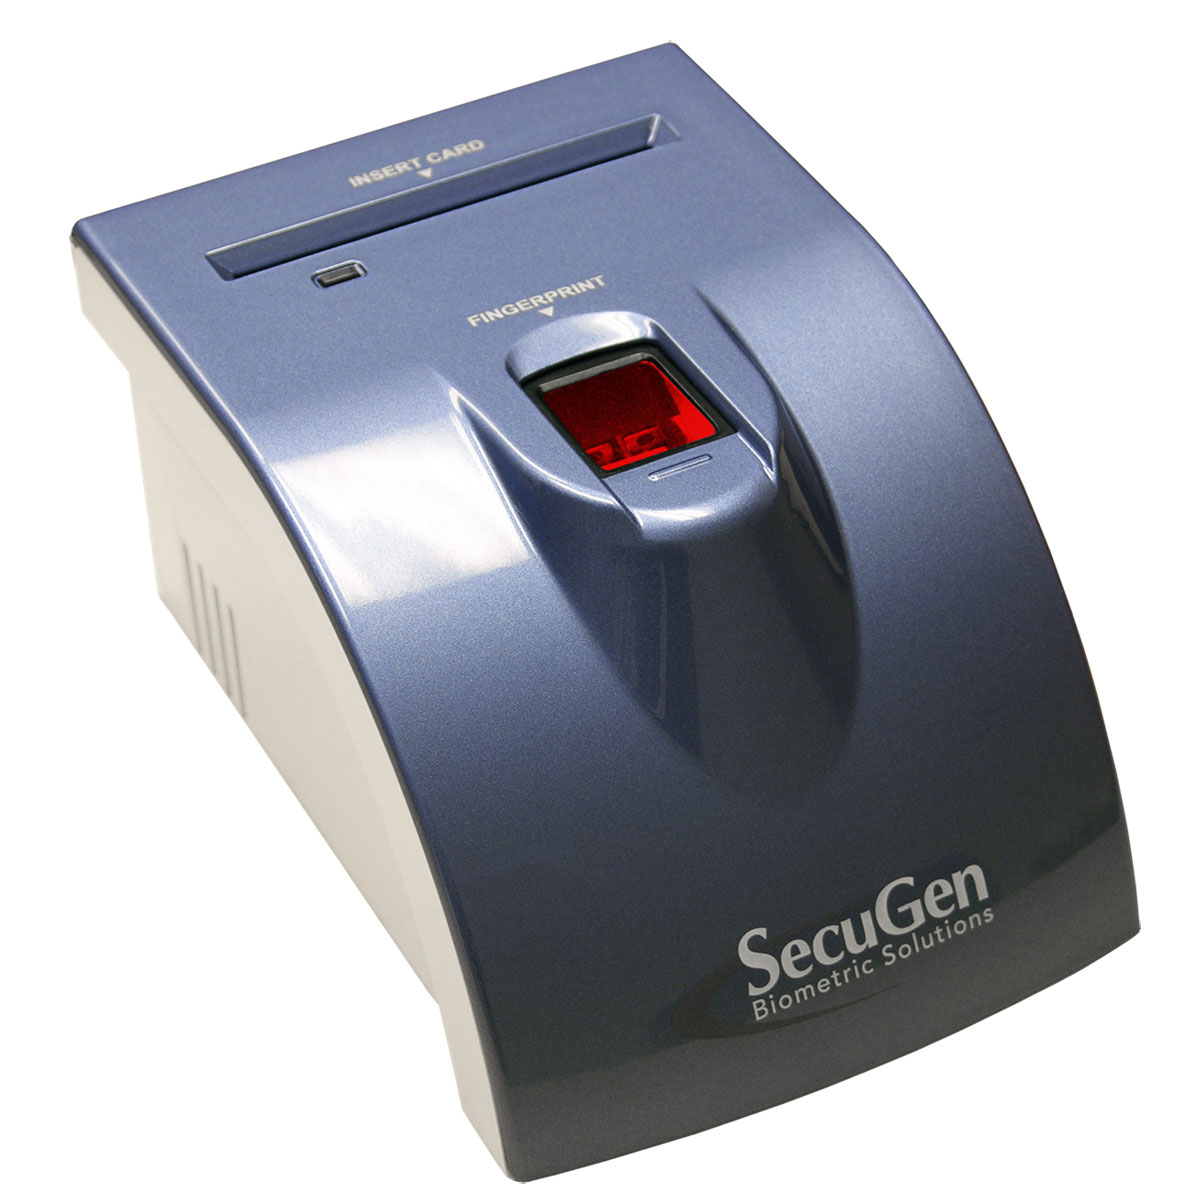 SecuGen iD-USB SC Fingerprint Scanner with Card Reader